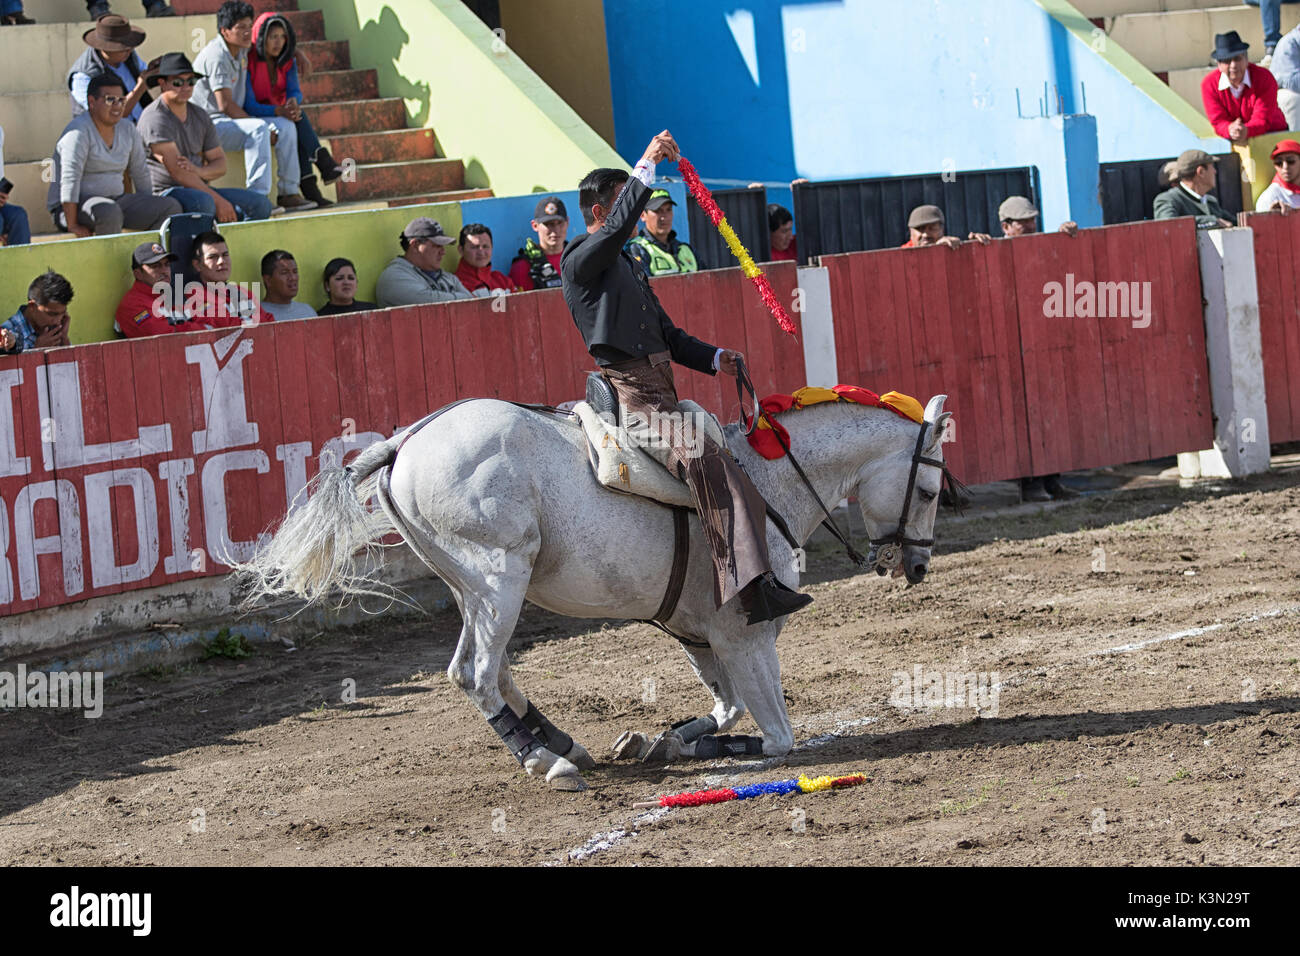 June 18, 2017, Pujili, Ecuador: bullfighter in the arena brings is horse to its knees as a salute to the spectators Stock Photo